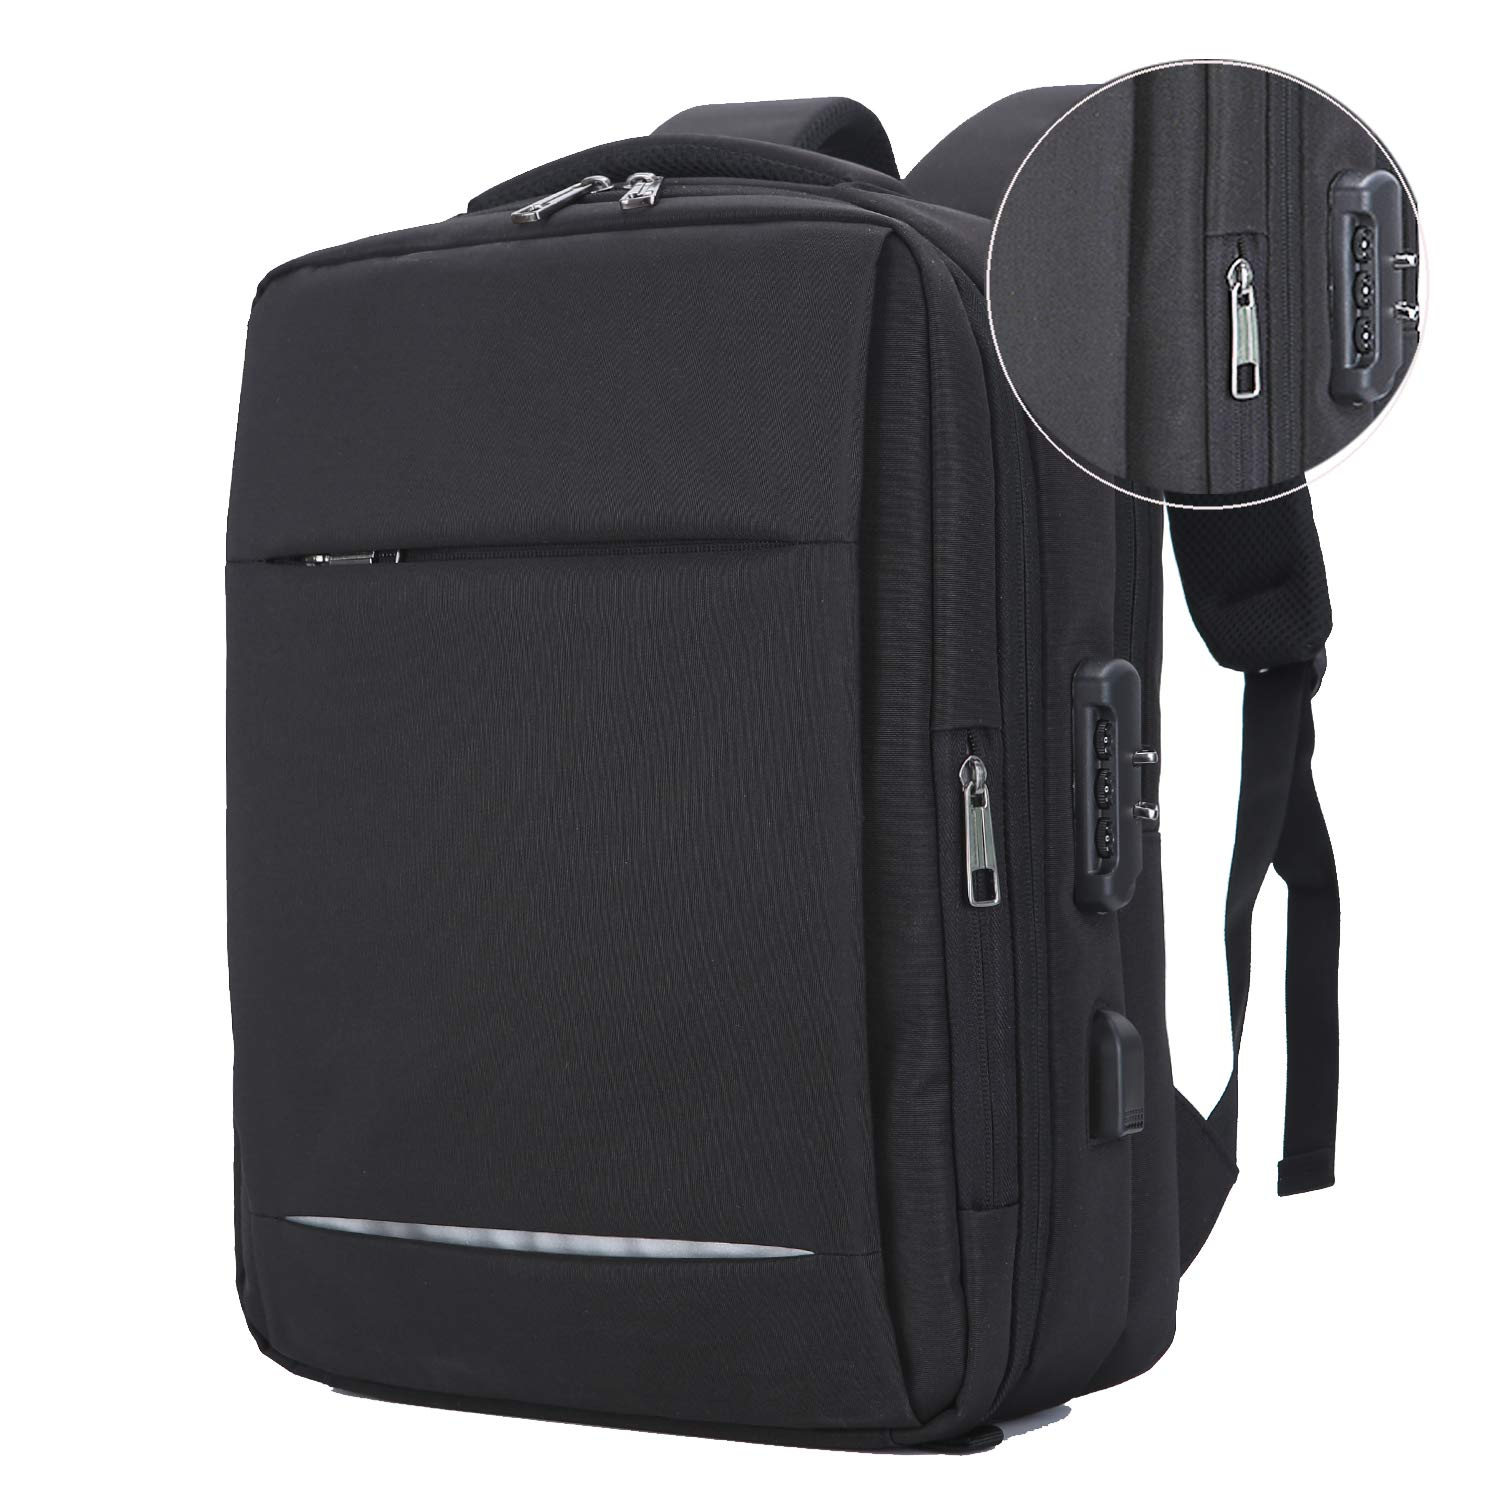 YOUPECK Anti-theft Laptop Backpack Business Bags with USB Charging Port Lock, Water Resistant College School Bookbag Travel Pack Fits Under 15.6 Inch Laptop, Black